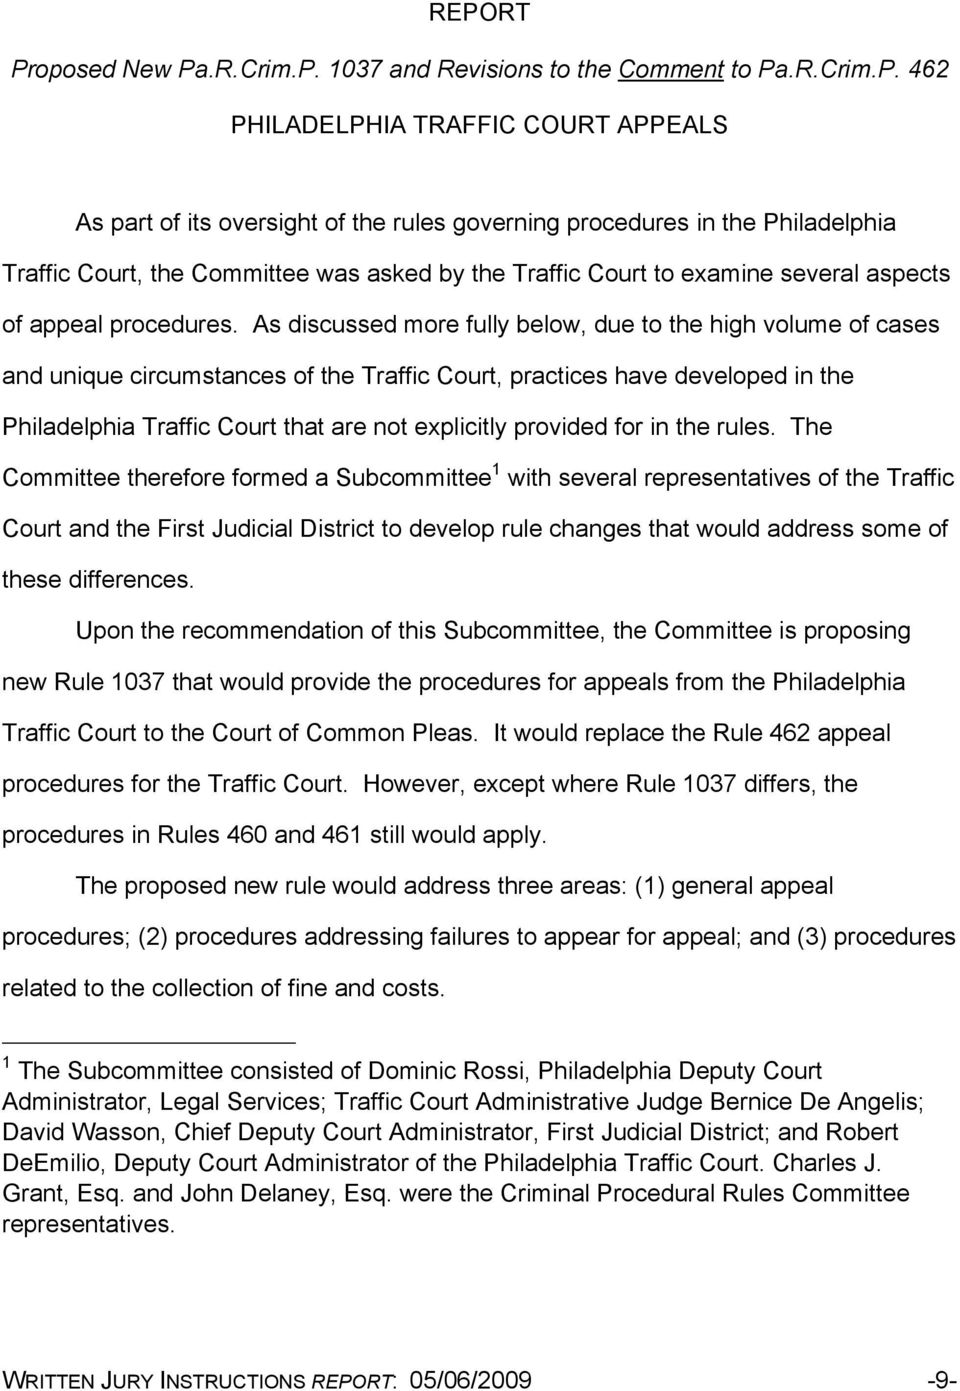 As discussed more fully below, due to the high volume of cases and unique circumstances of the Traffic Court, practices have developed in the Philadelphia Traffic Court that are not explicitly